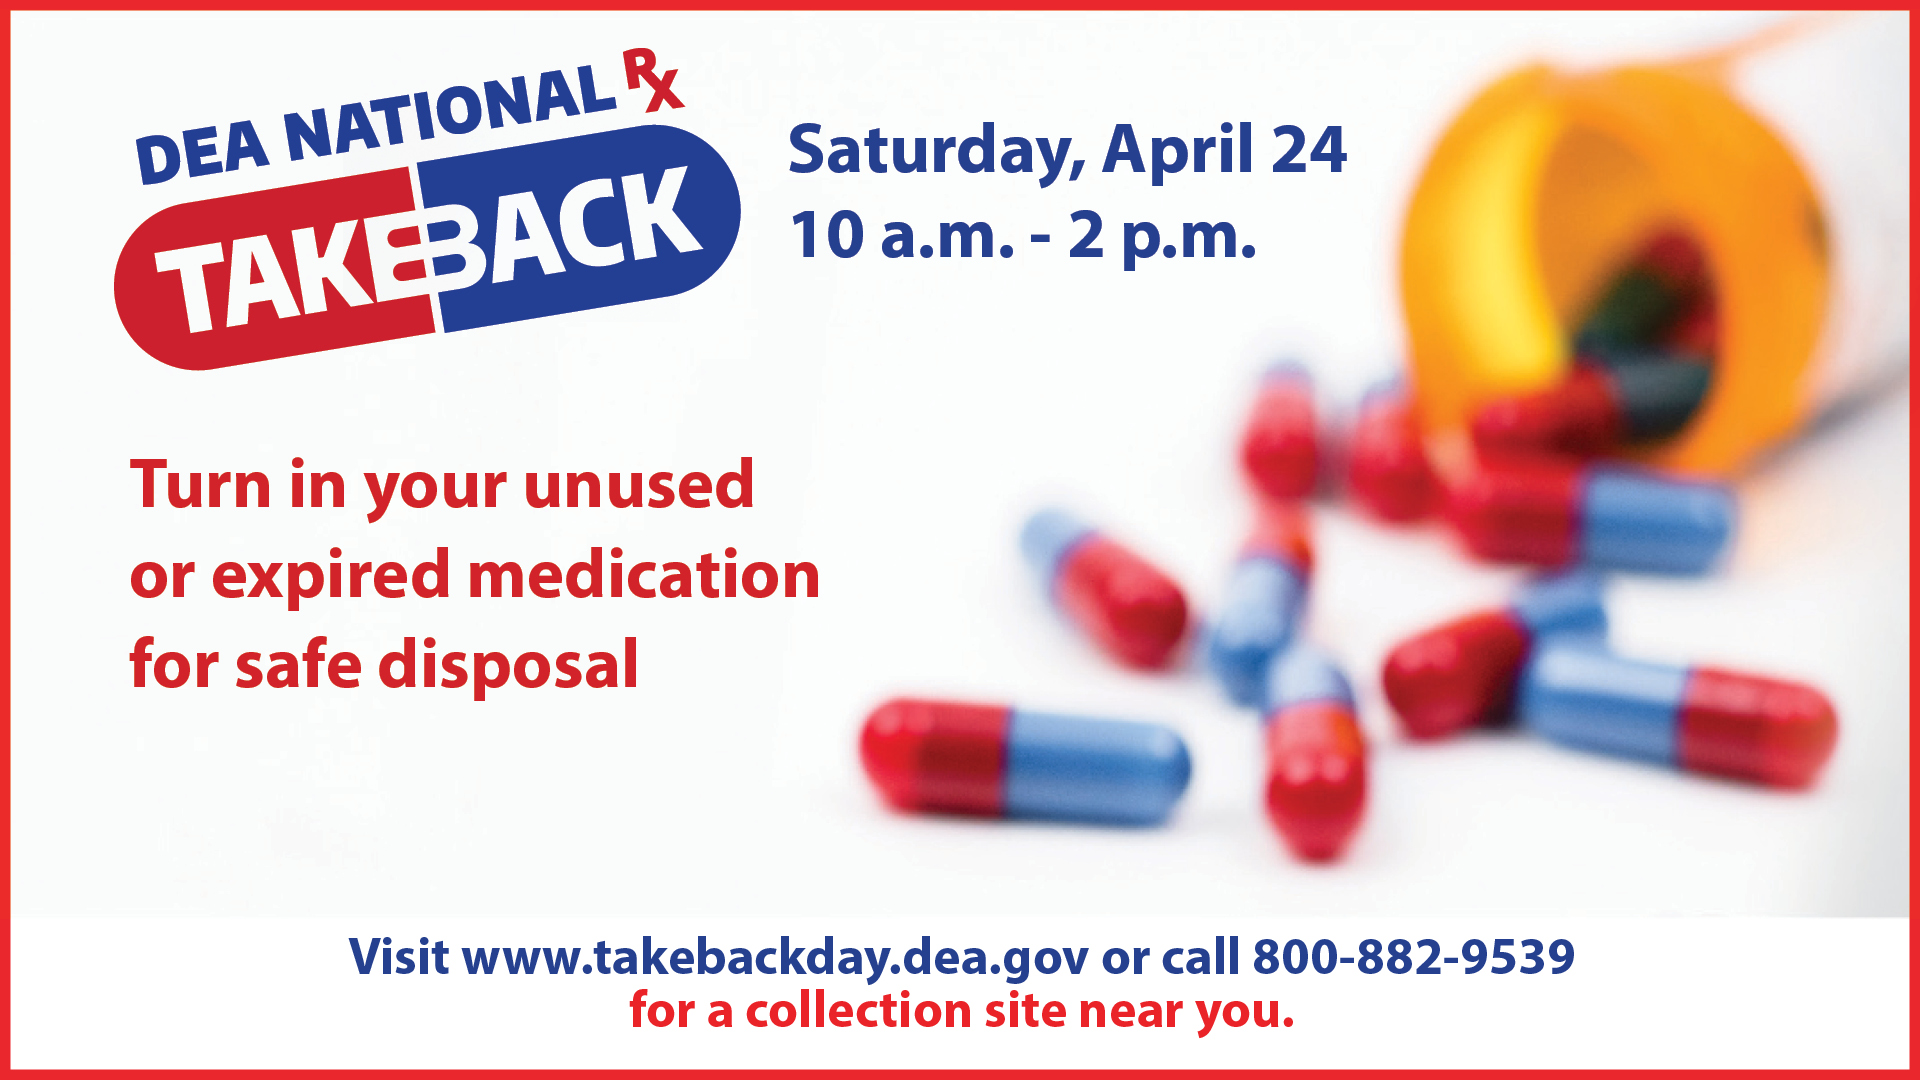 Drug Take Back Day. Saturday, April 24th 10am - 2pm. Turn in your unused or expired medication for safe disposal. Visit www.takebackday.dea.gov or call 800-882-9539 for a collection site near you.